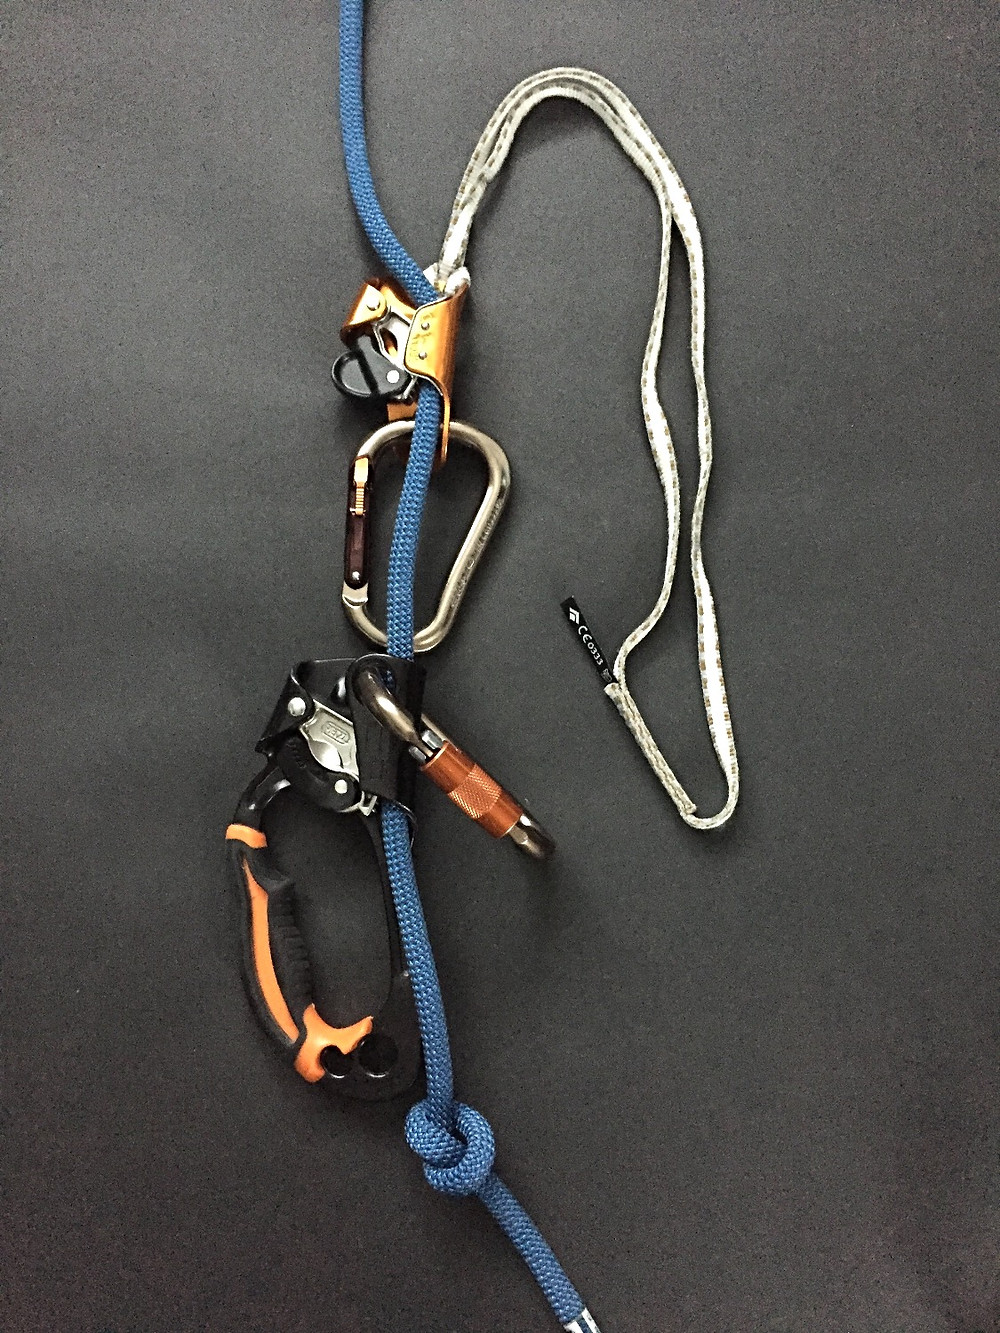 solo ice climbing system